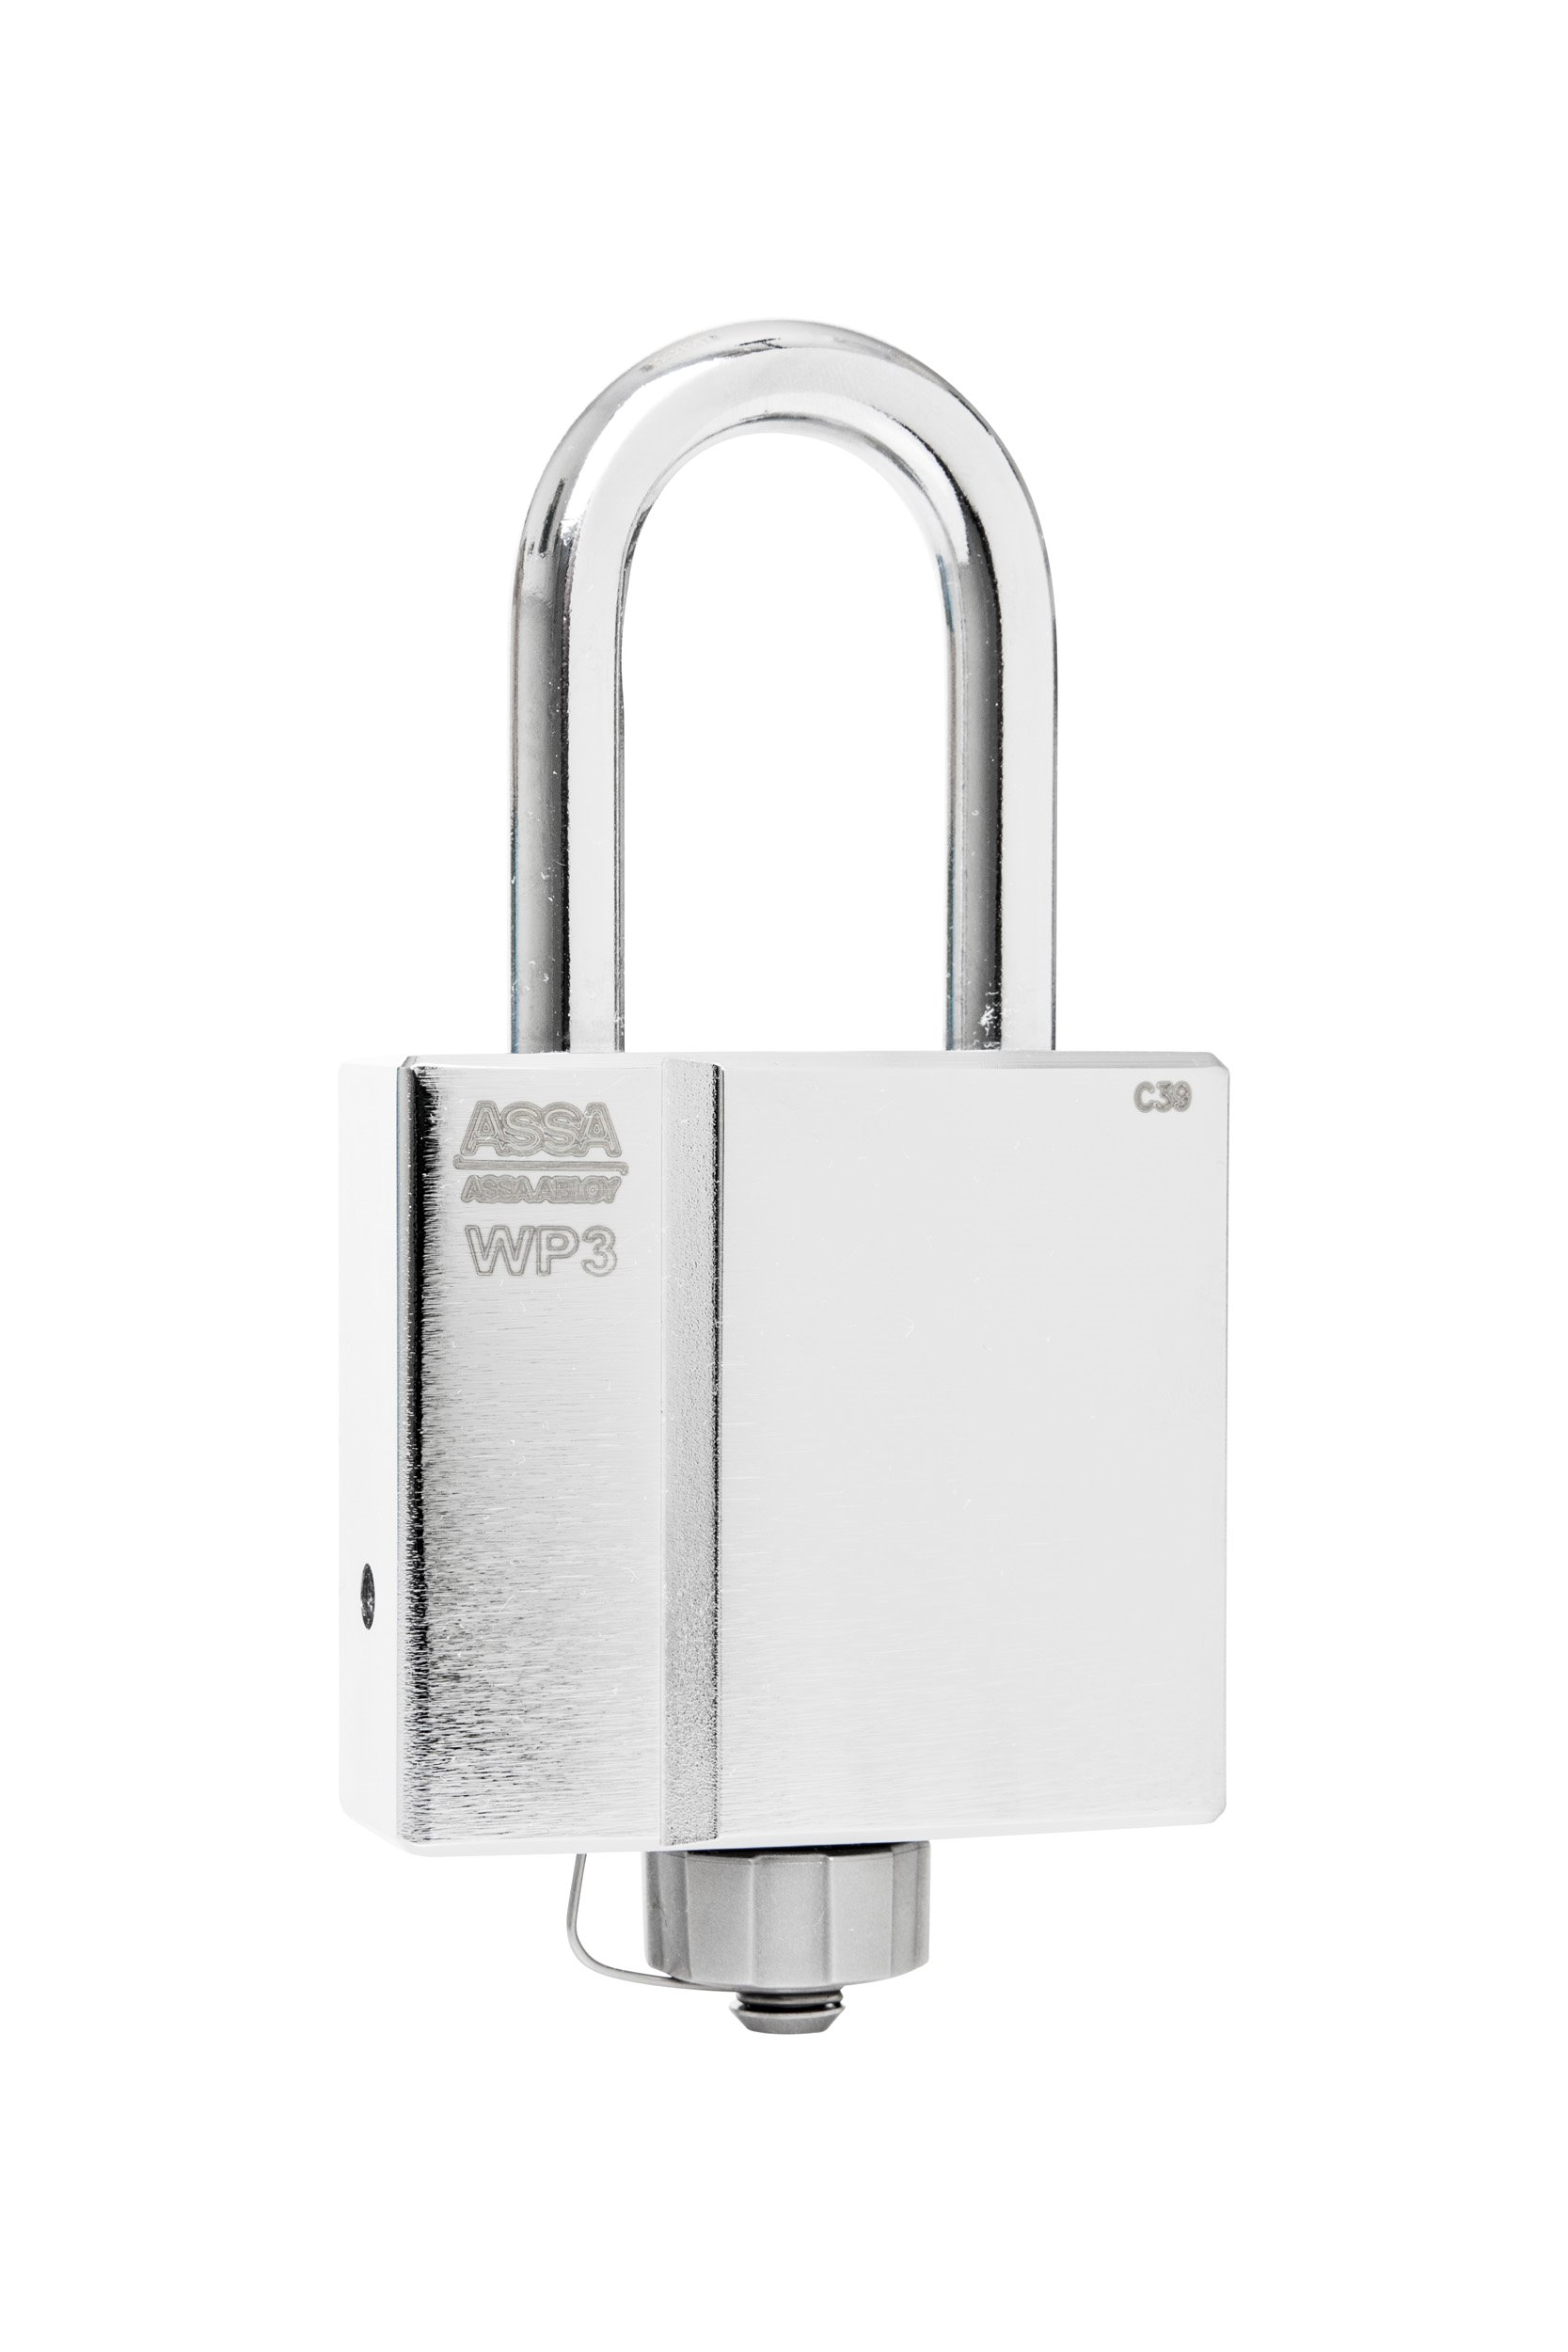 44350 - WP Key locking extented shackle